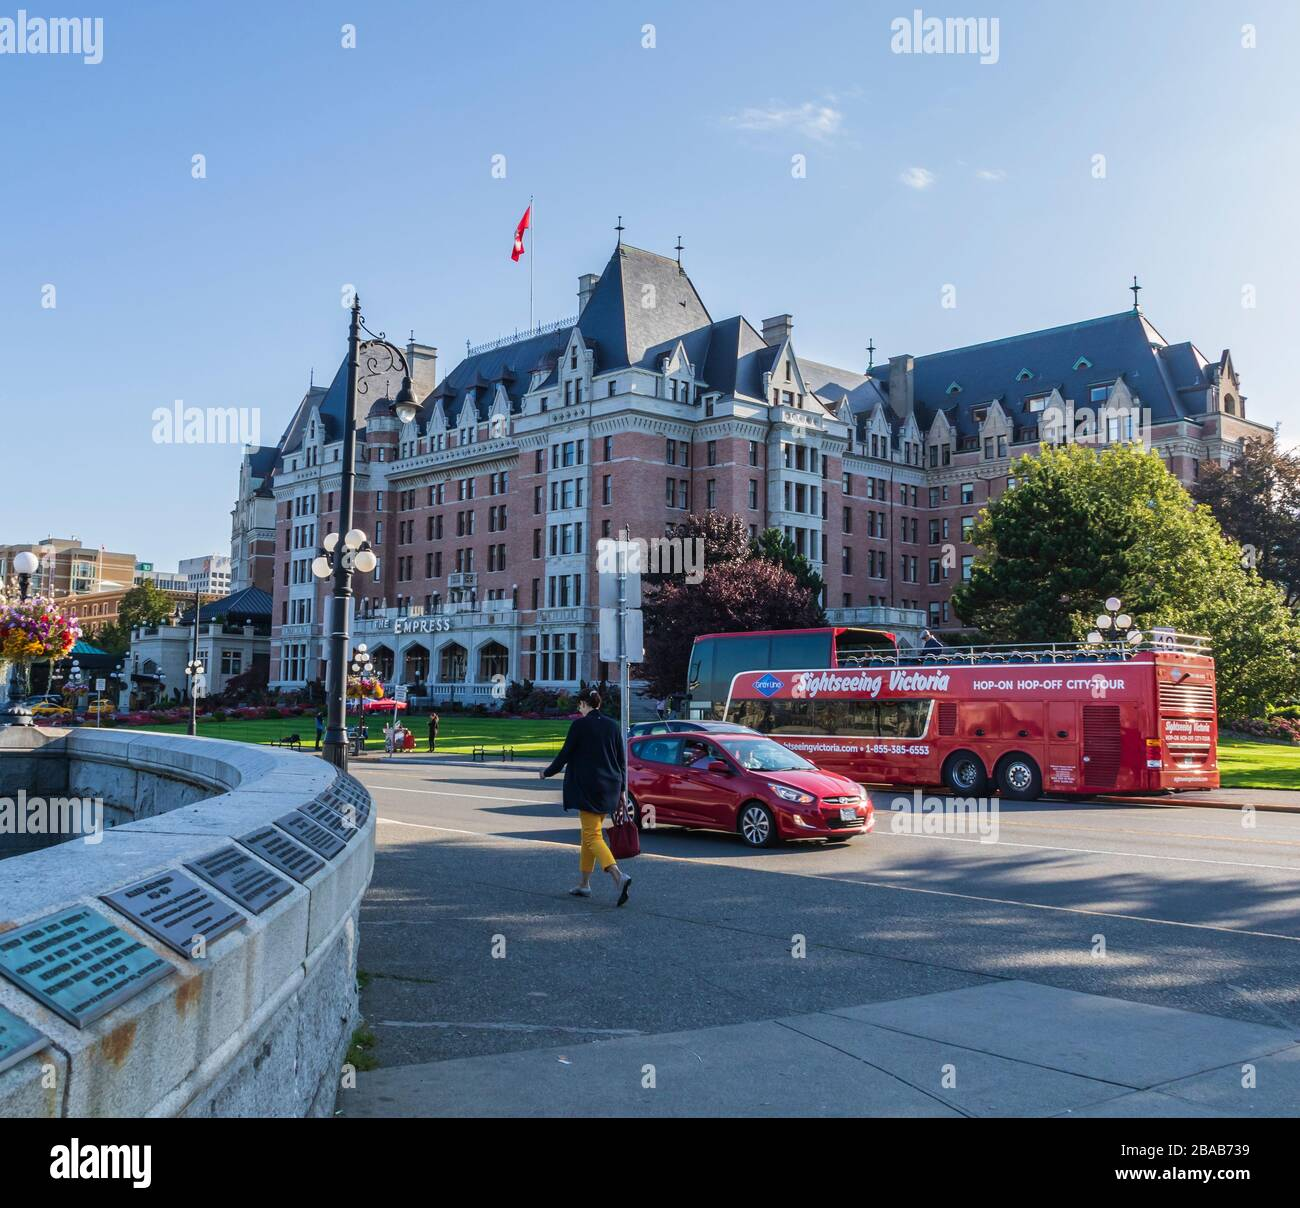 Hop-on Hop-off tour bus in front of Fairmont Empress Hotel at the harbor in Victoria, British Columbia, Canada. Stock Photo